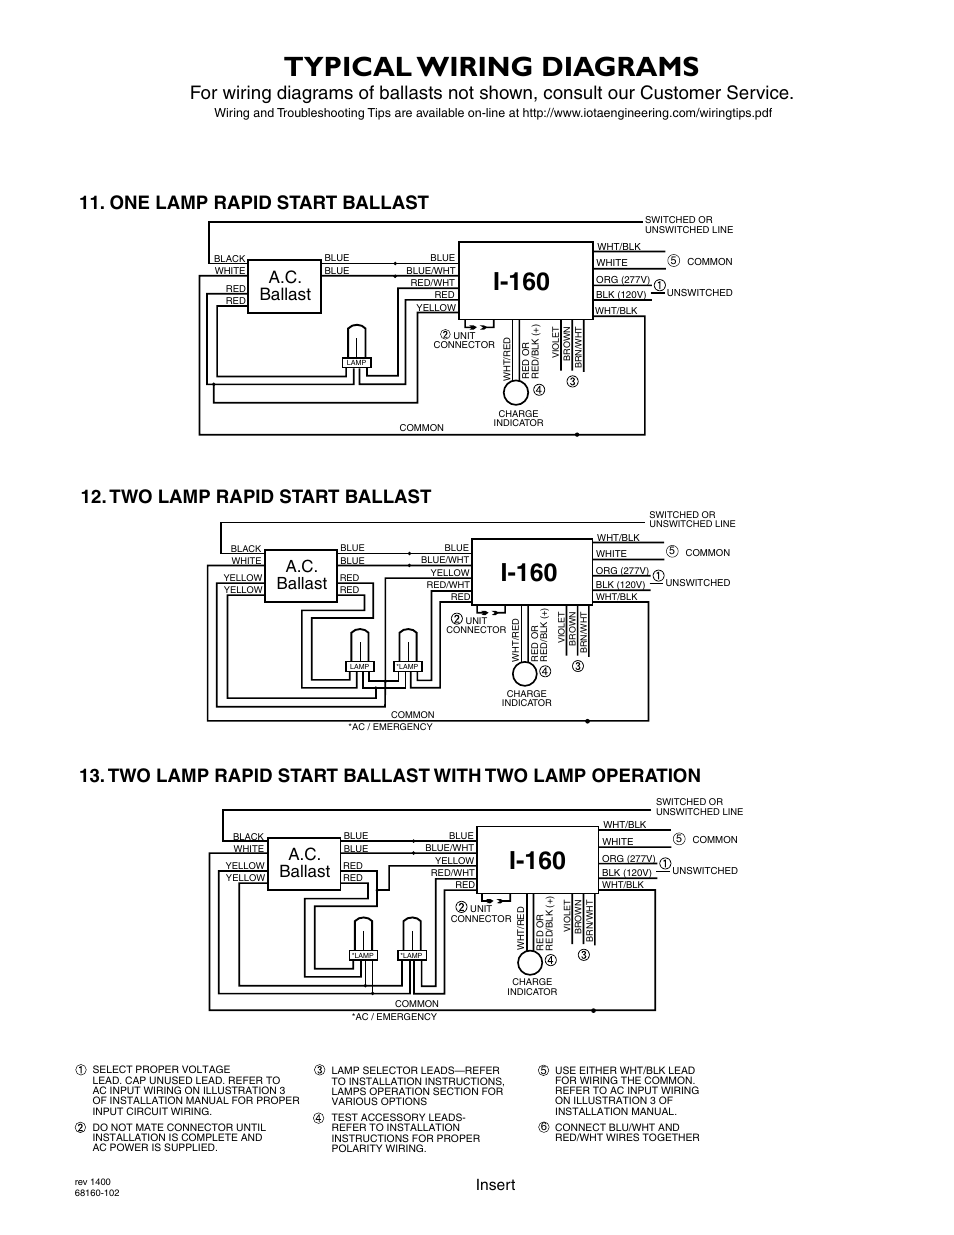 Car Air Conditioning Diagram together with 2005 Ford Explorer Radio Wiring Diagram as well Vacuum Line Question With Pic together with Watch further Bobcat 753 Ignition Switch Wiring Diagram. on free ford explorer diagrams